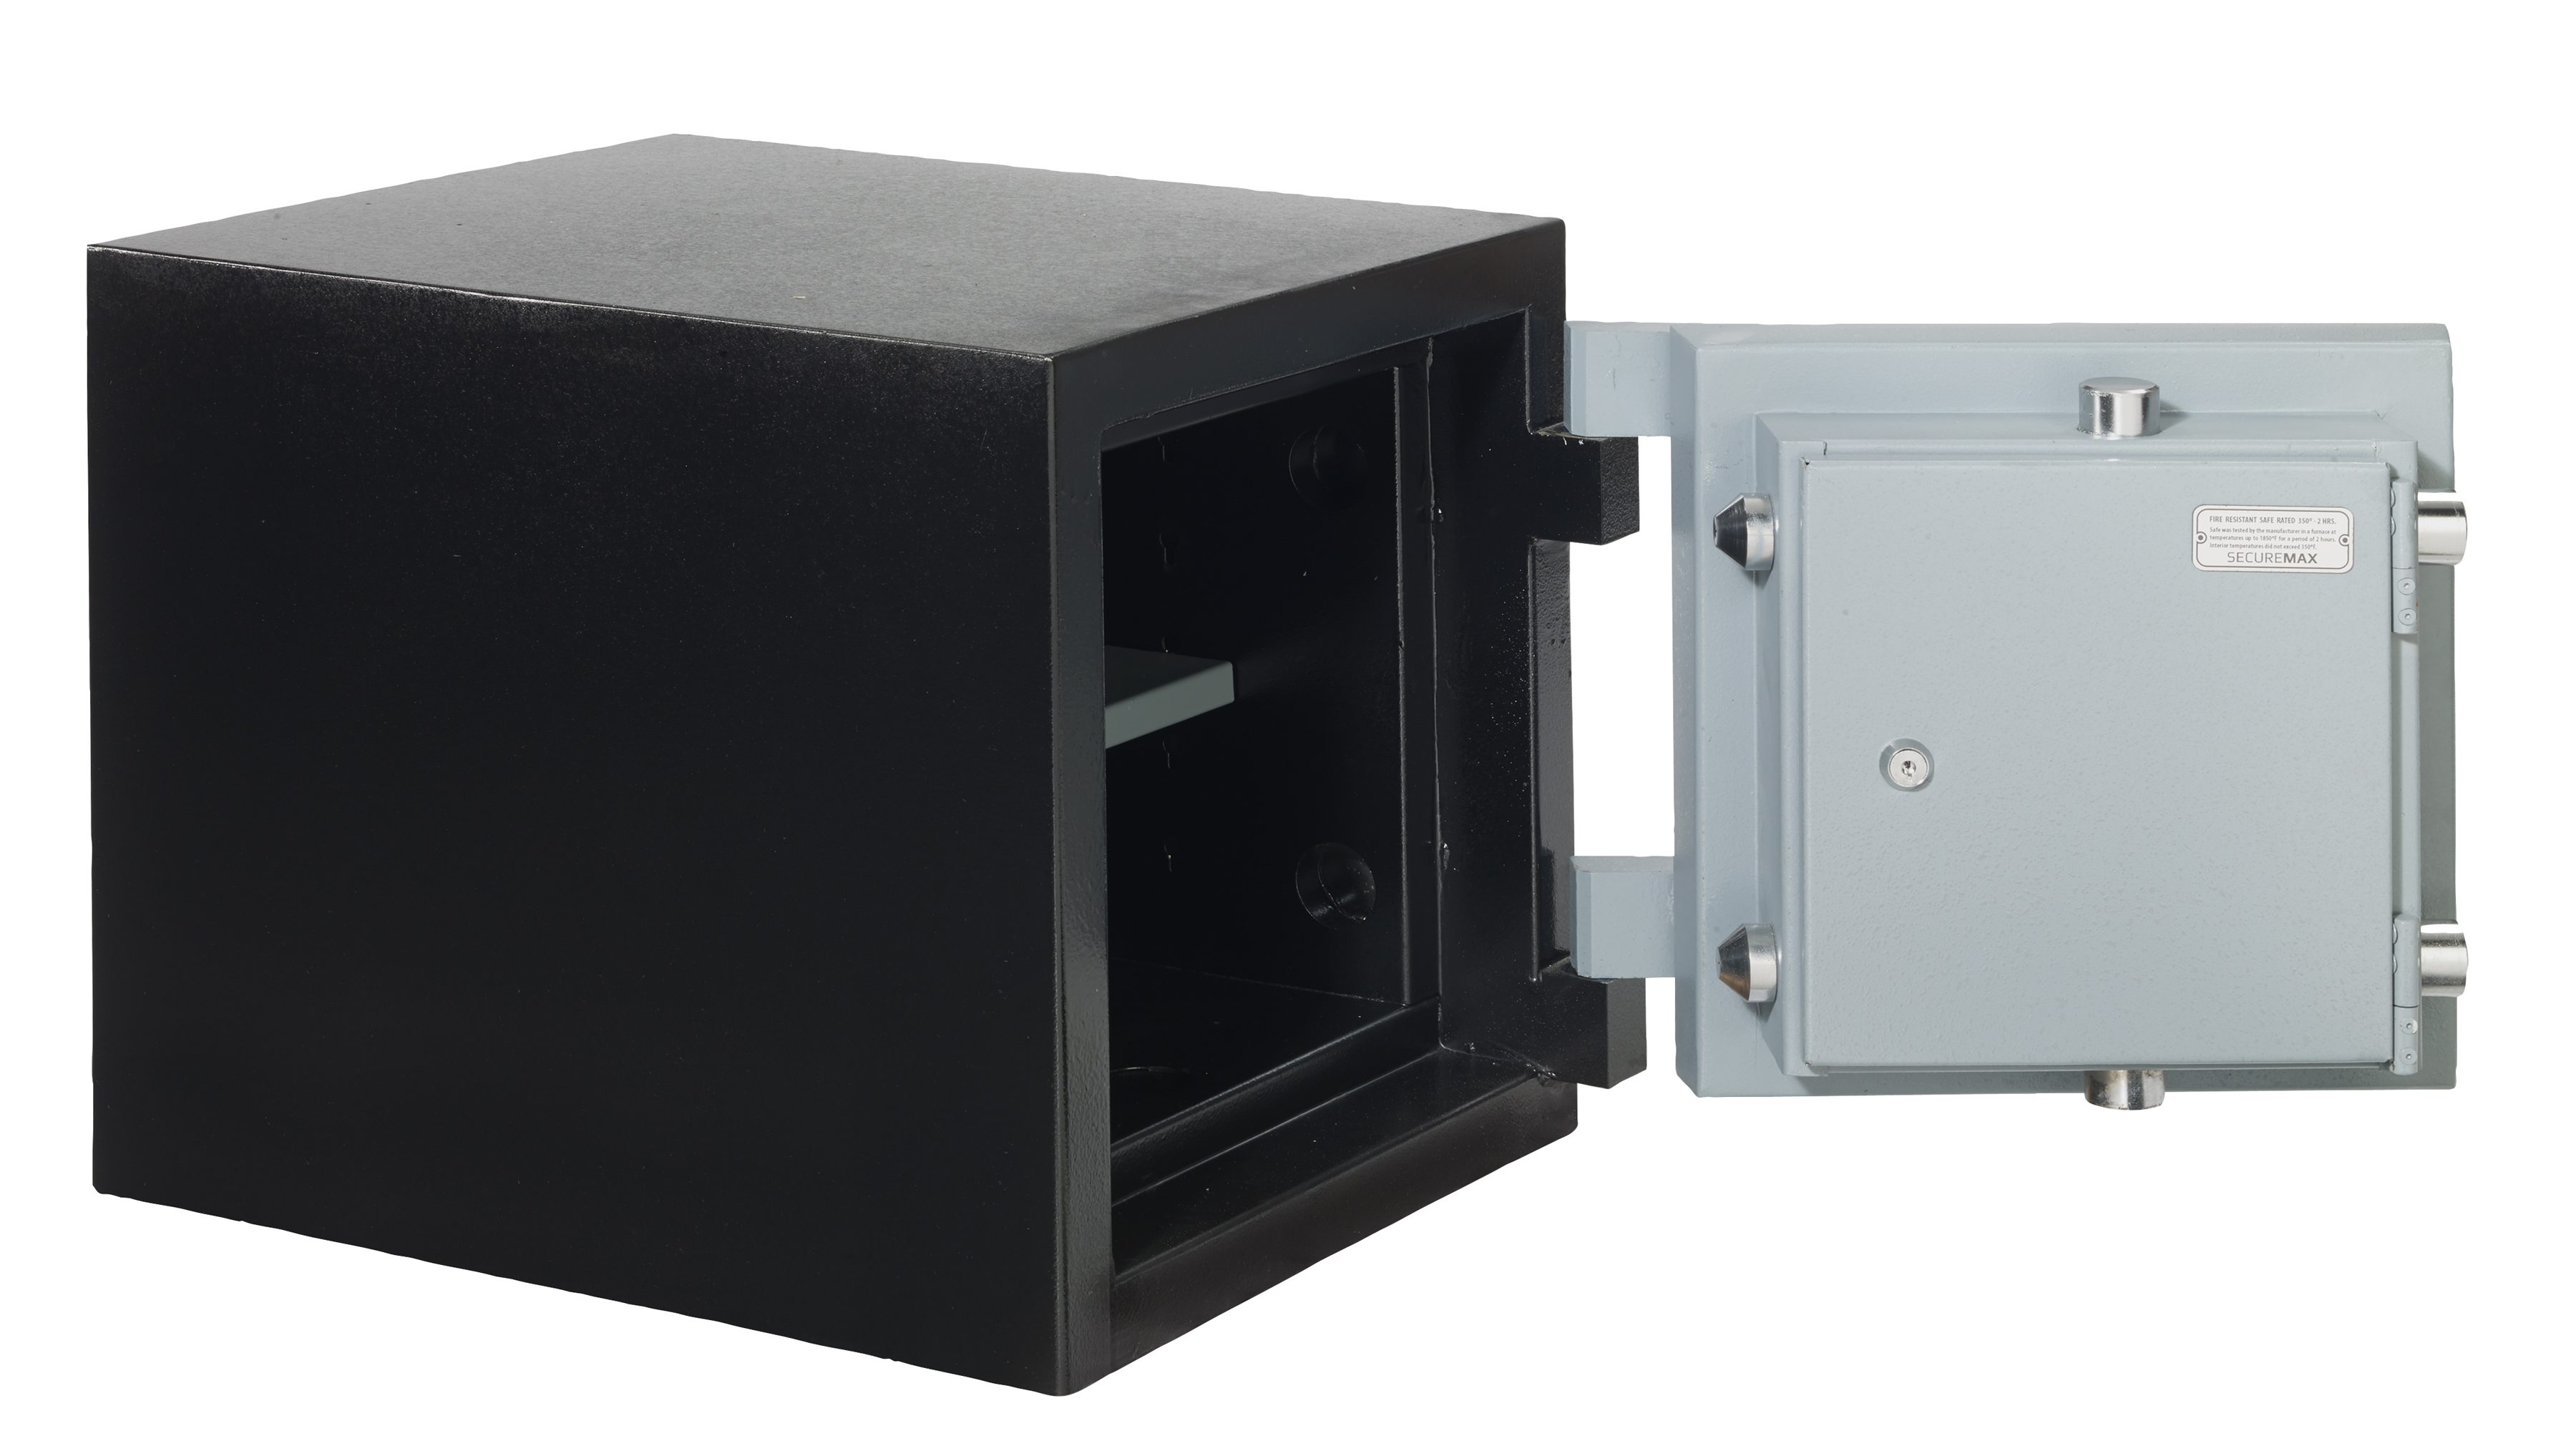 https://www.accusafes.com/wp-content/uploads/2018/10/HD-1212-SIDE-3600x2007.jpg